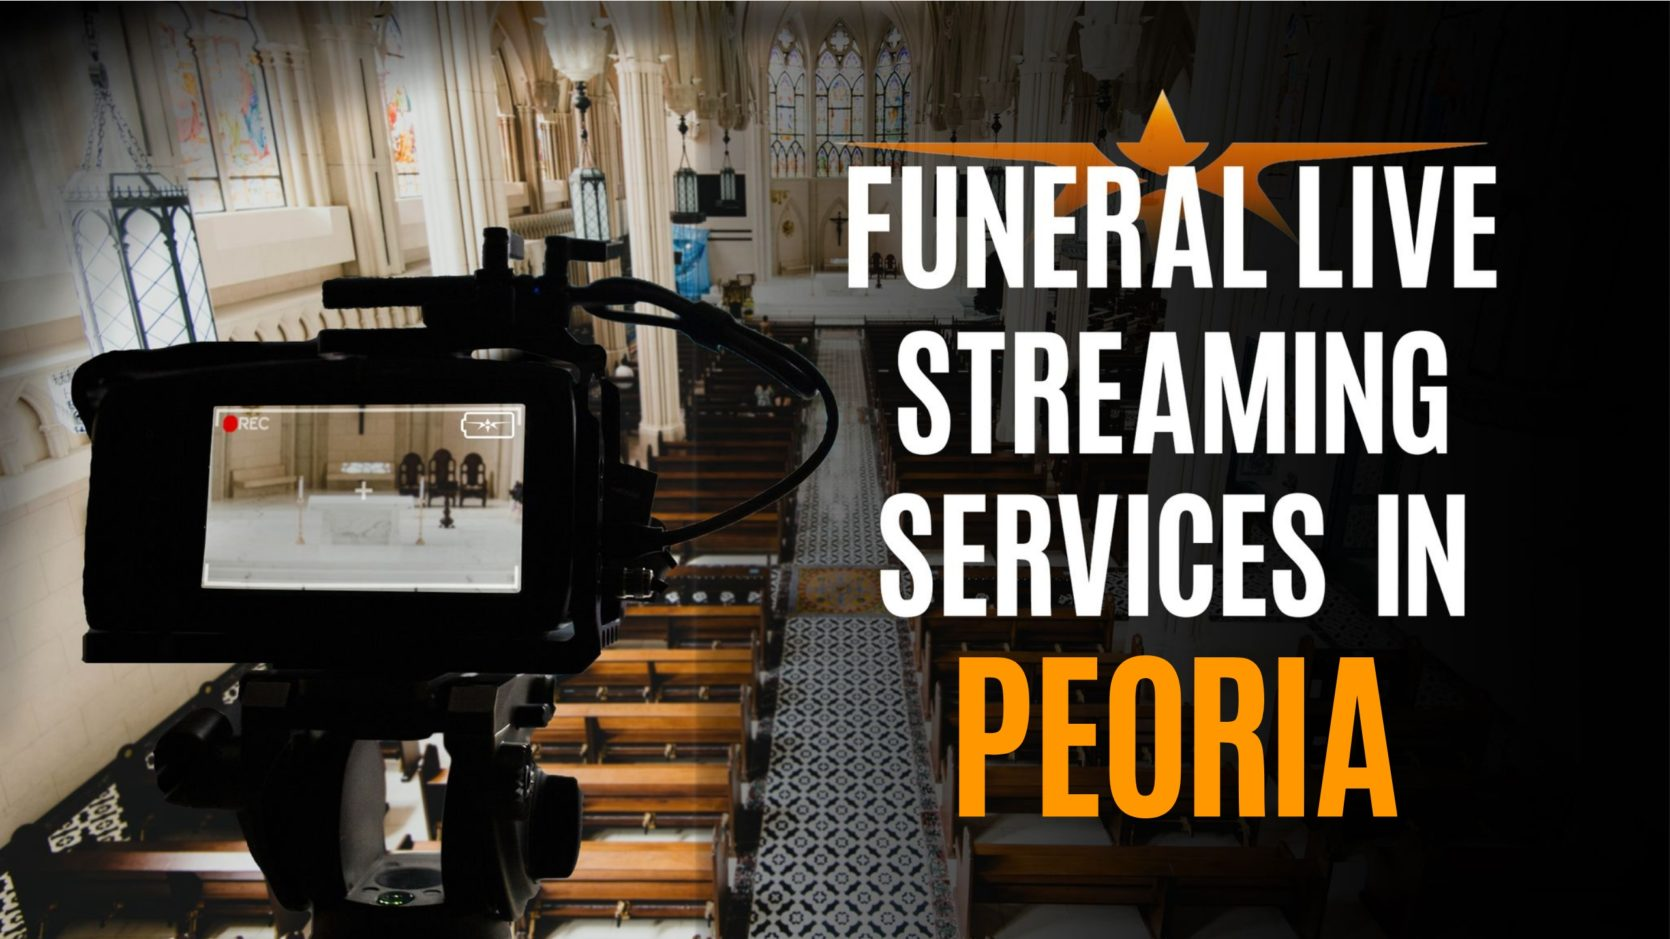 Funeral Live Streaming Services in Peoria